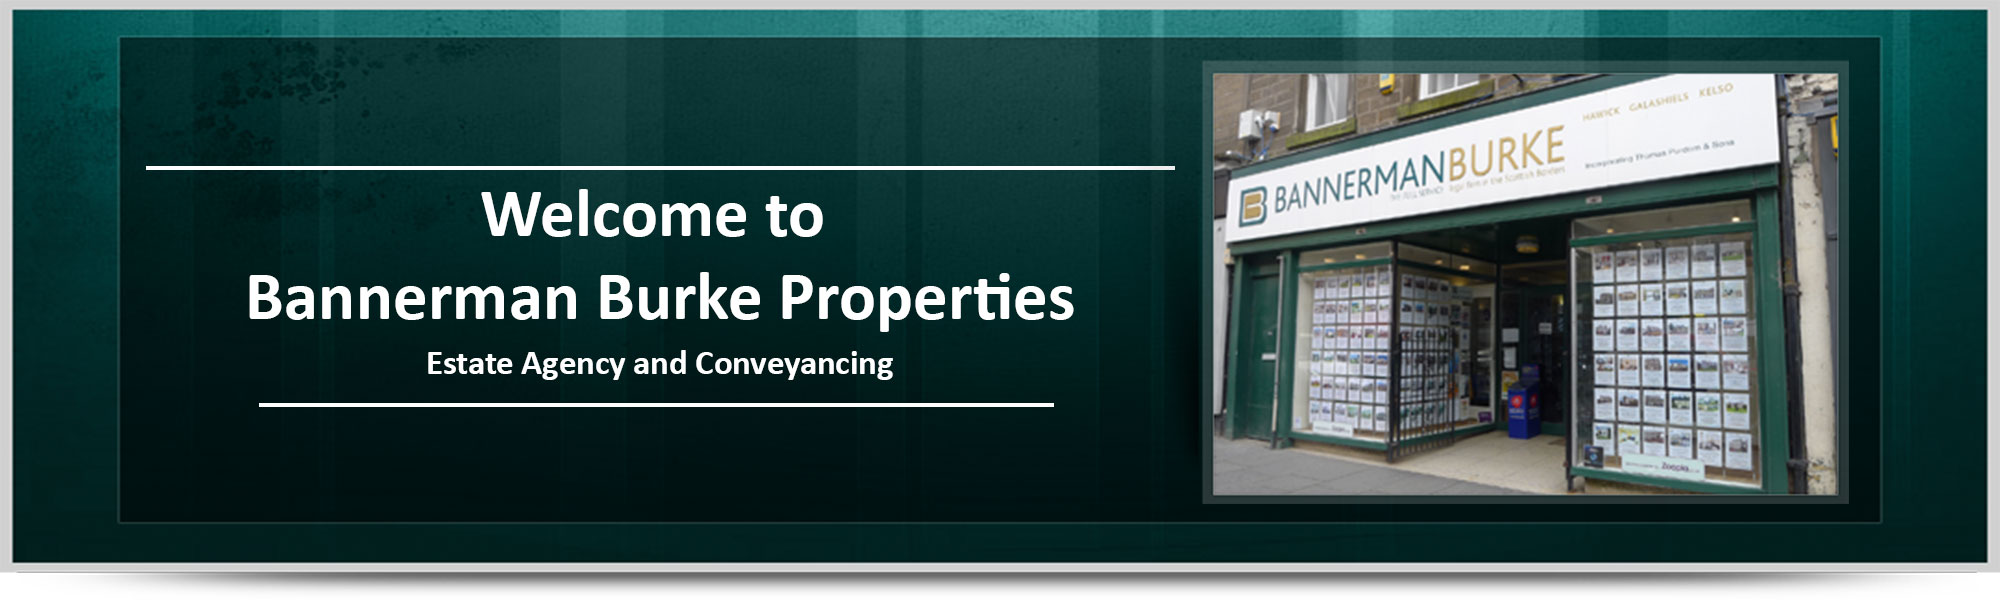 Welcome to Bannerman Burke Properties Ltd